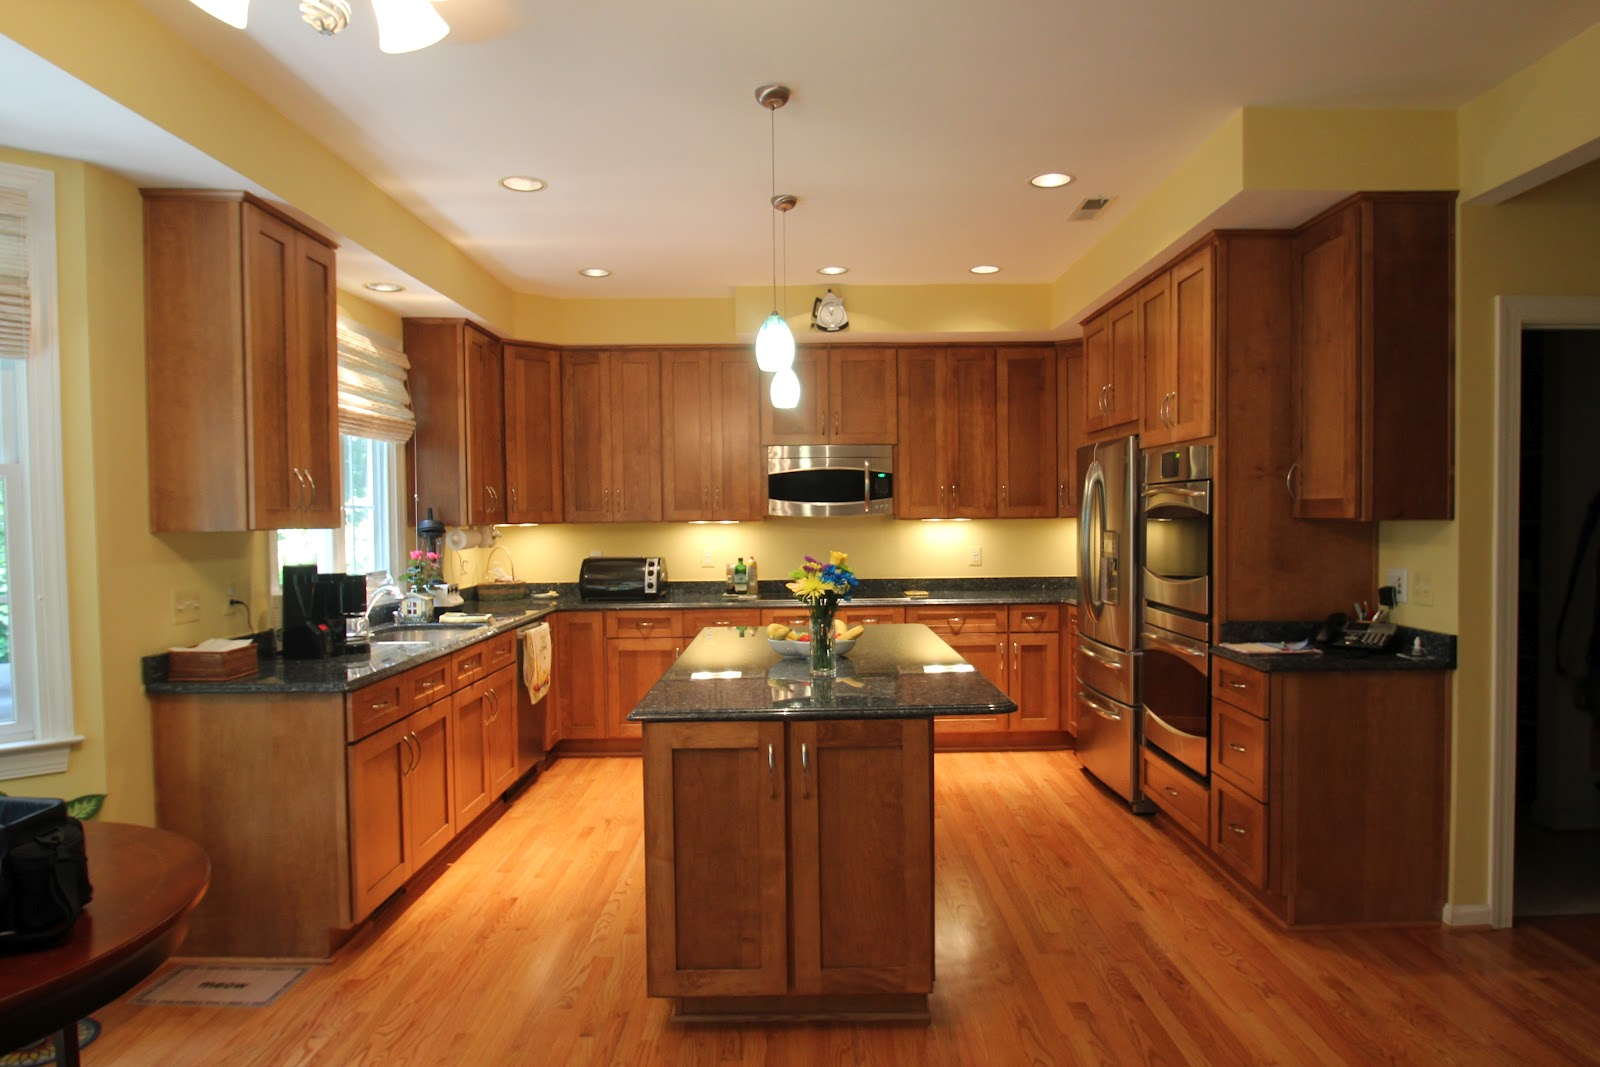 Black Kitchen Cabinets Resale Value Signature Kitchens And Woodcrafters Kitchen Remodeling